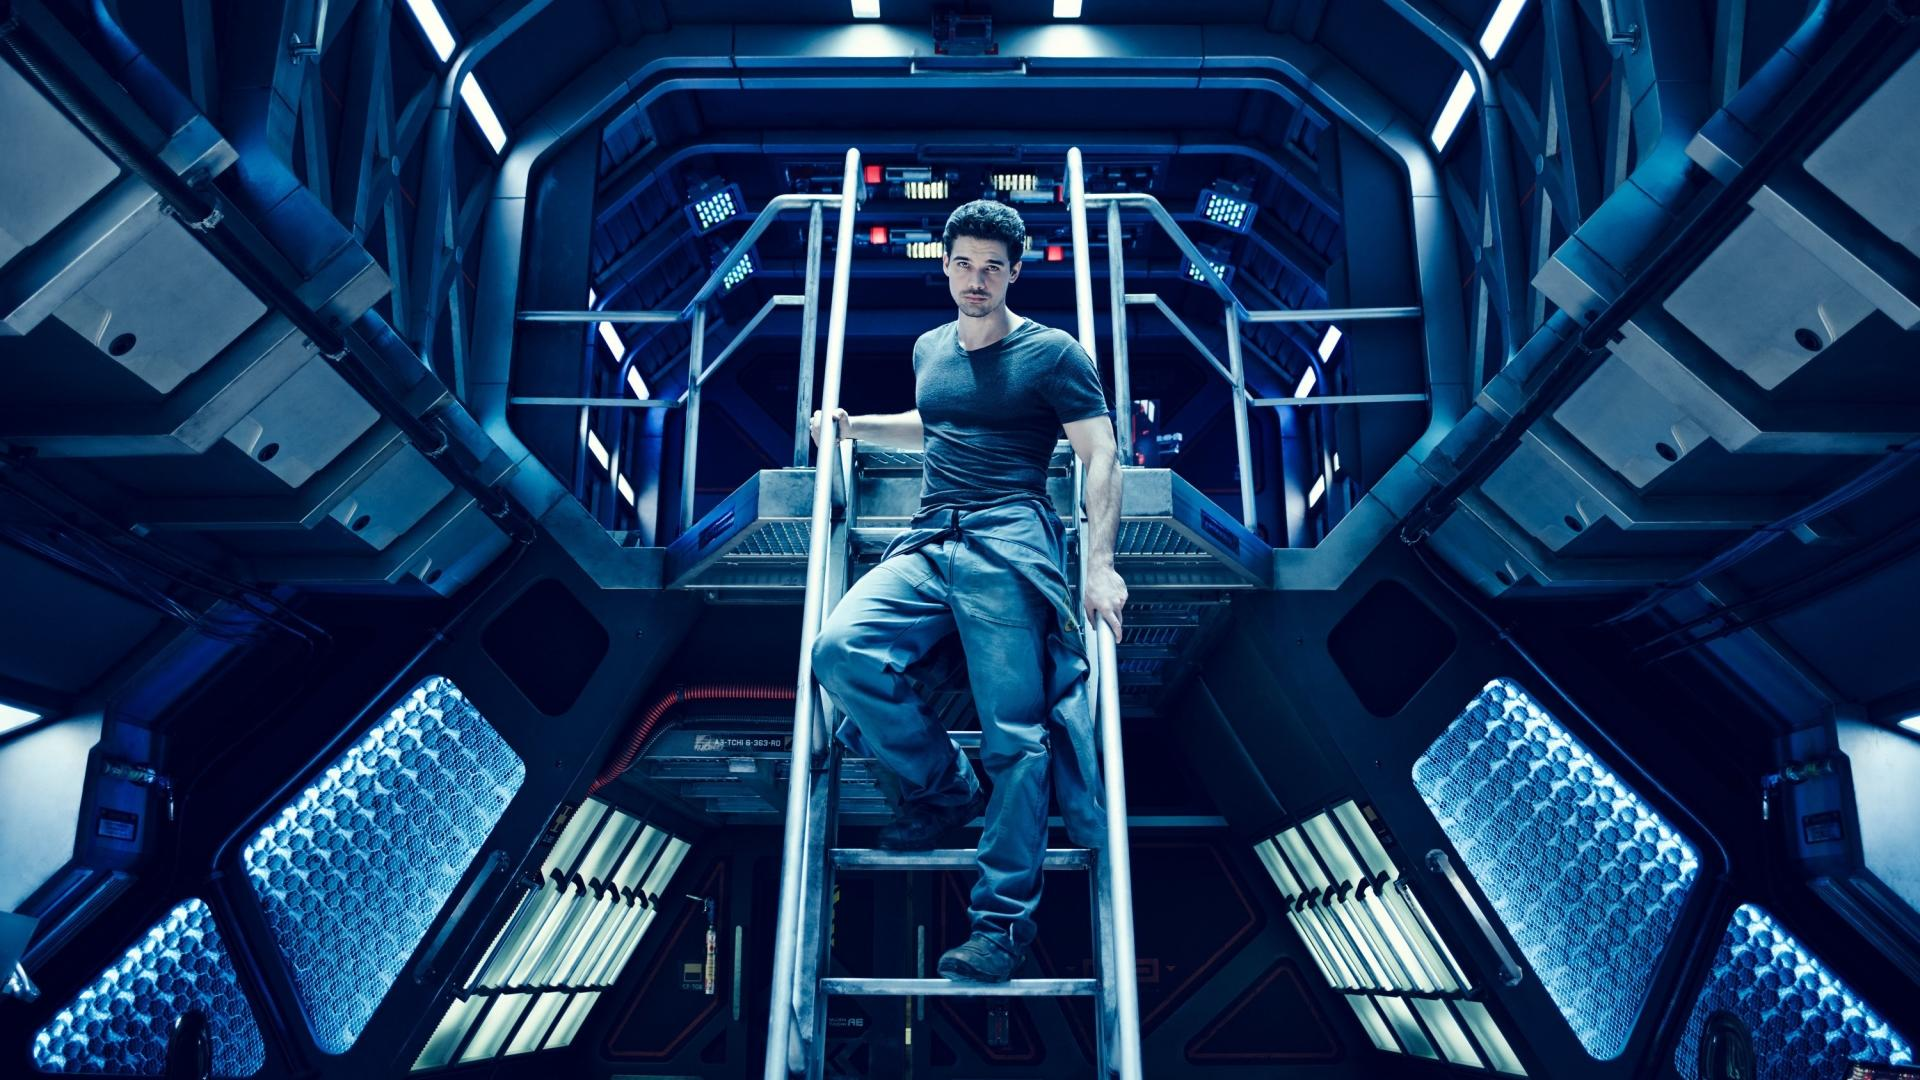 The Expanse Wallpaper HD Download